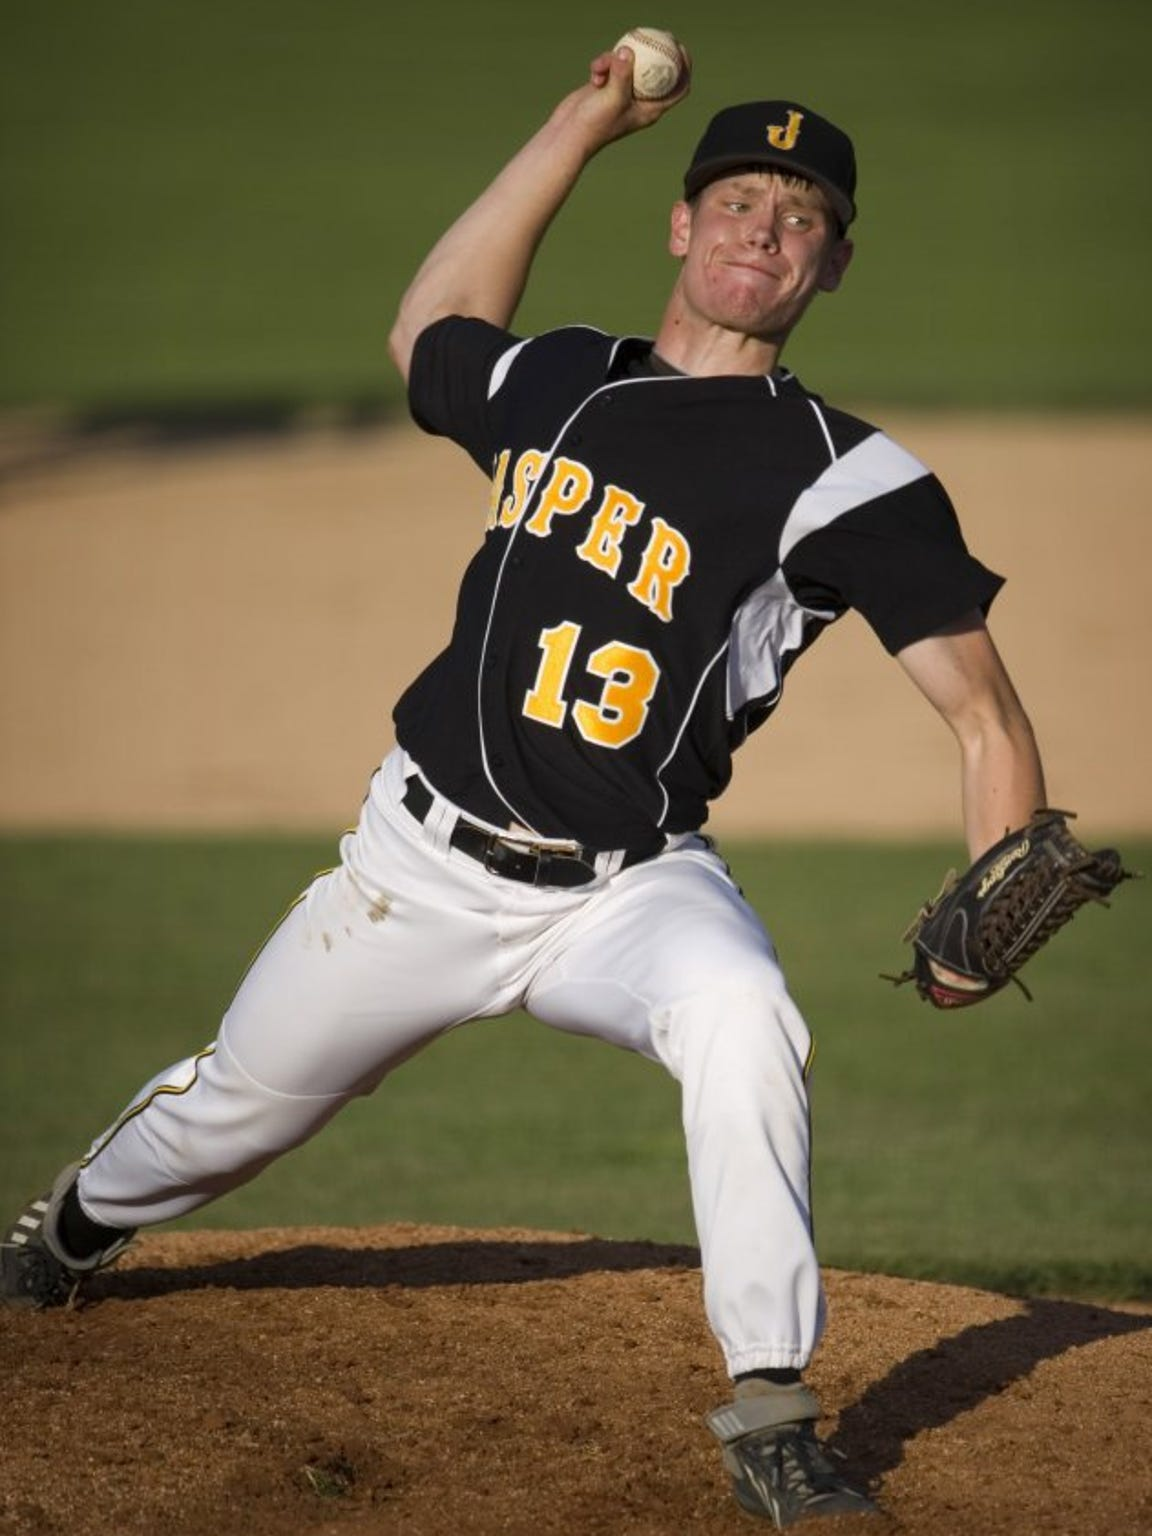 Cal Krueger delivers a pitch as a Jasper Wildcat, where